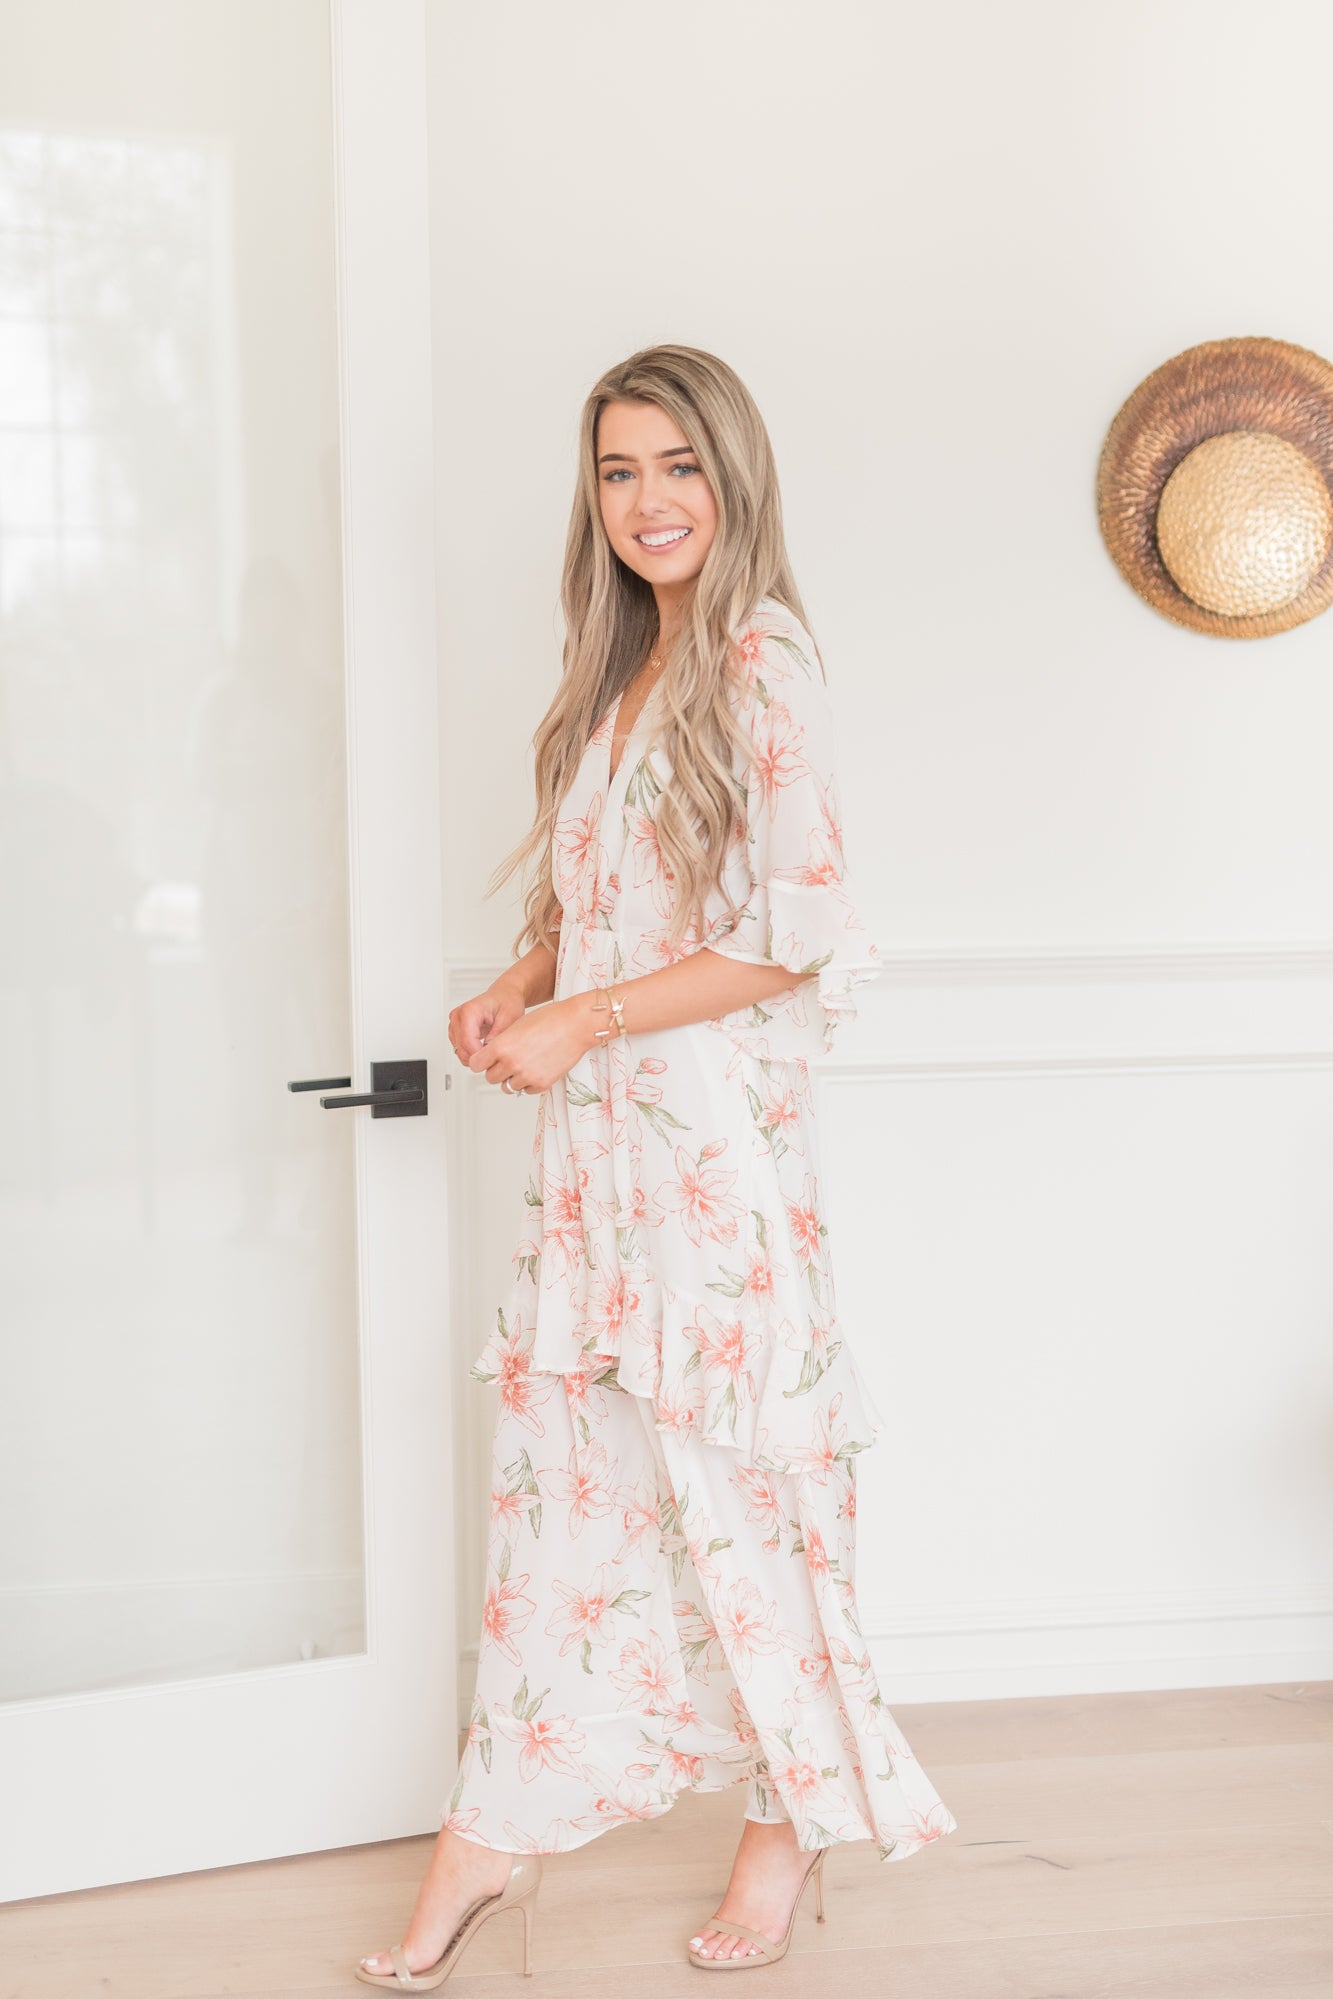 Romantic Floral Ruffle Dress - llacie